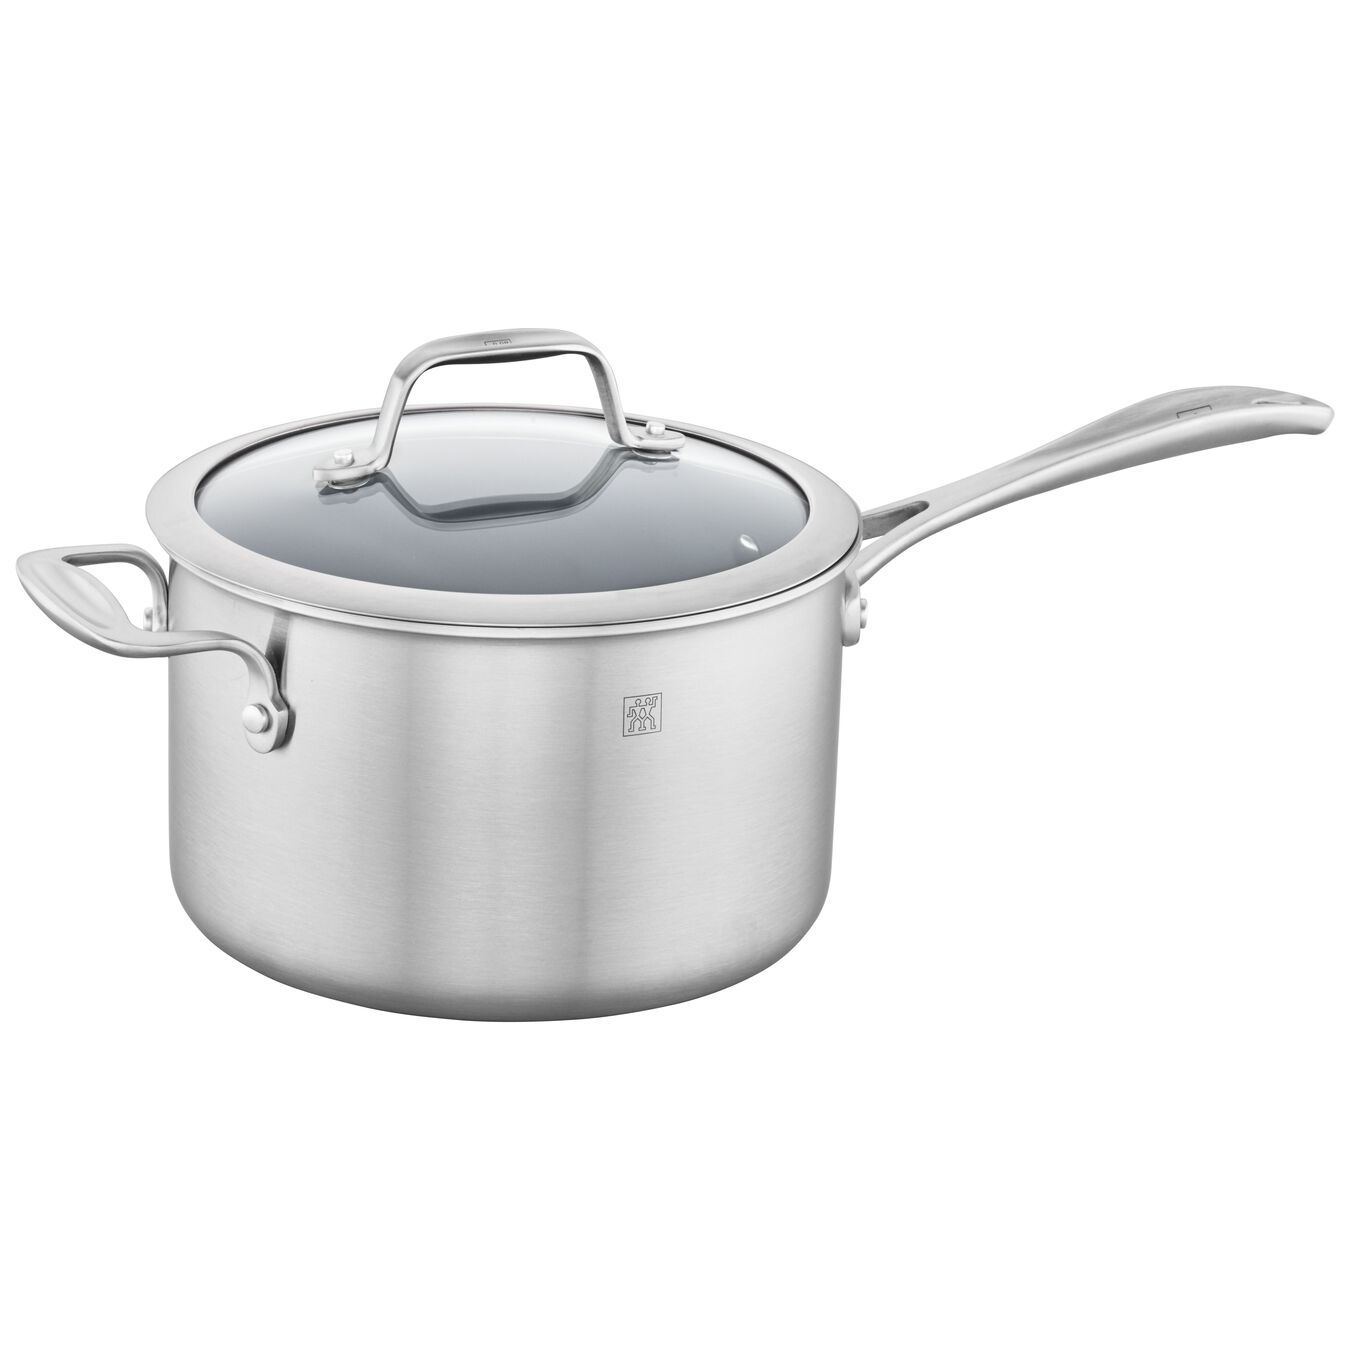 4 qt Sauce pan, 18/10 Stainless Steel ,,large 2